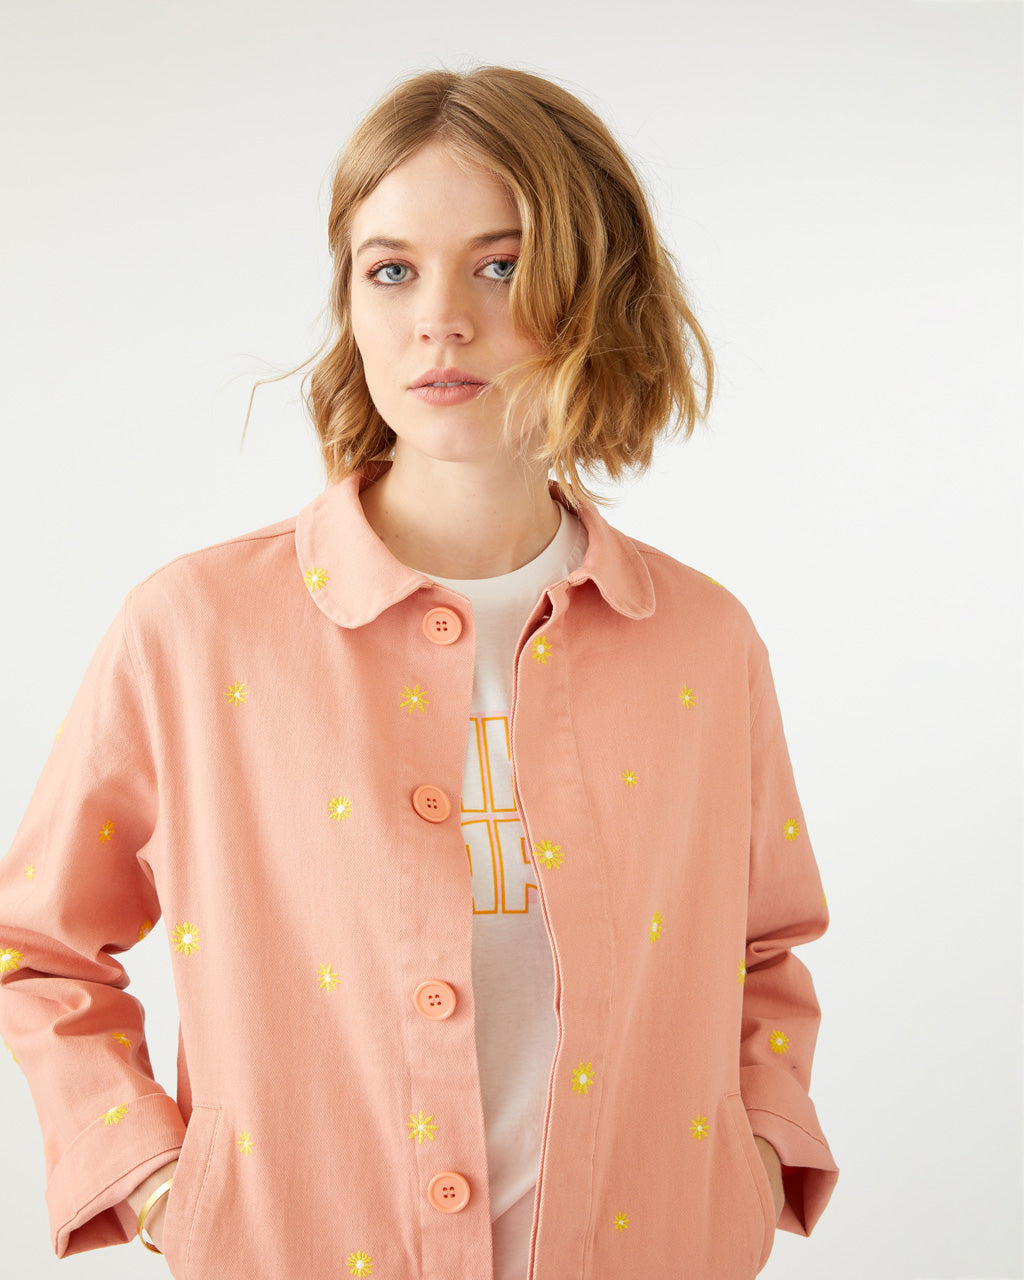 salmon colored work jacket with a yellow daisy pattern all over shown on model